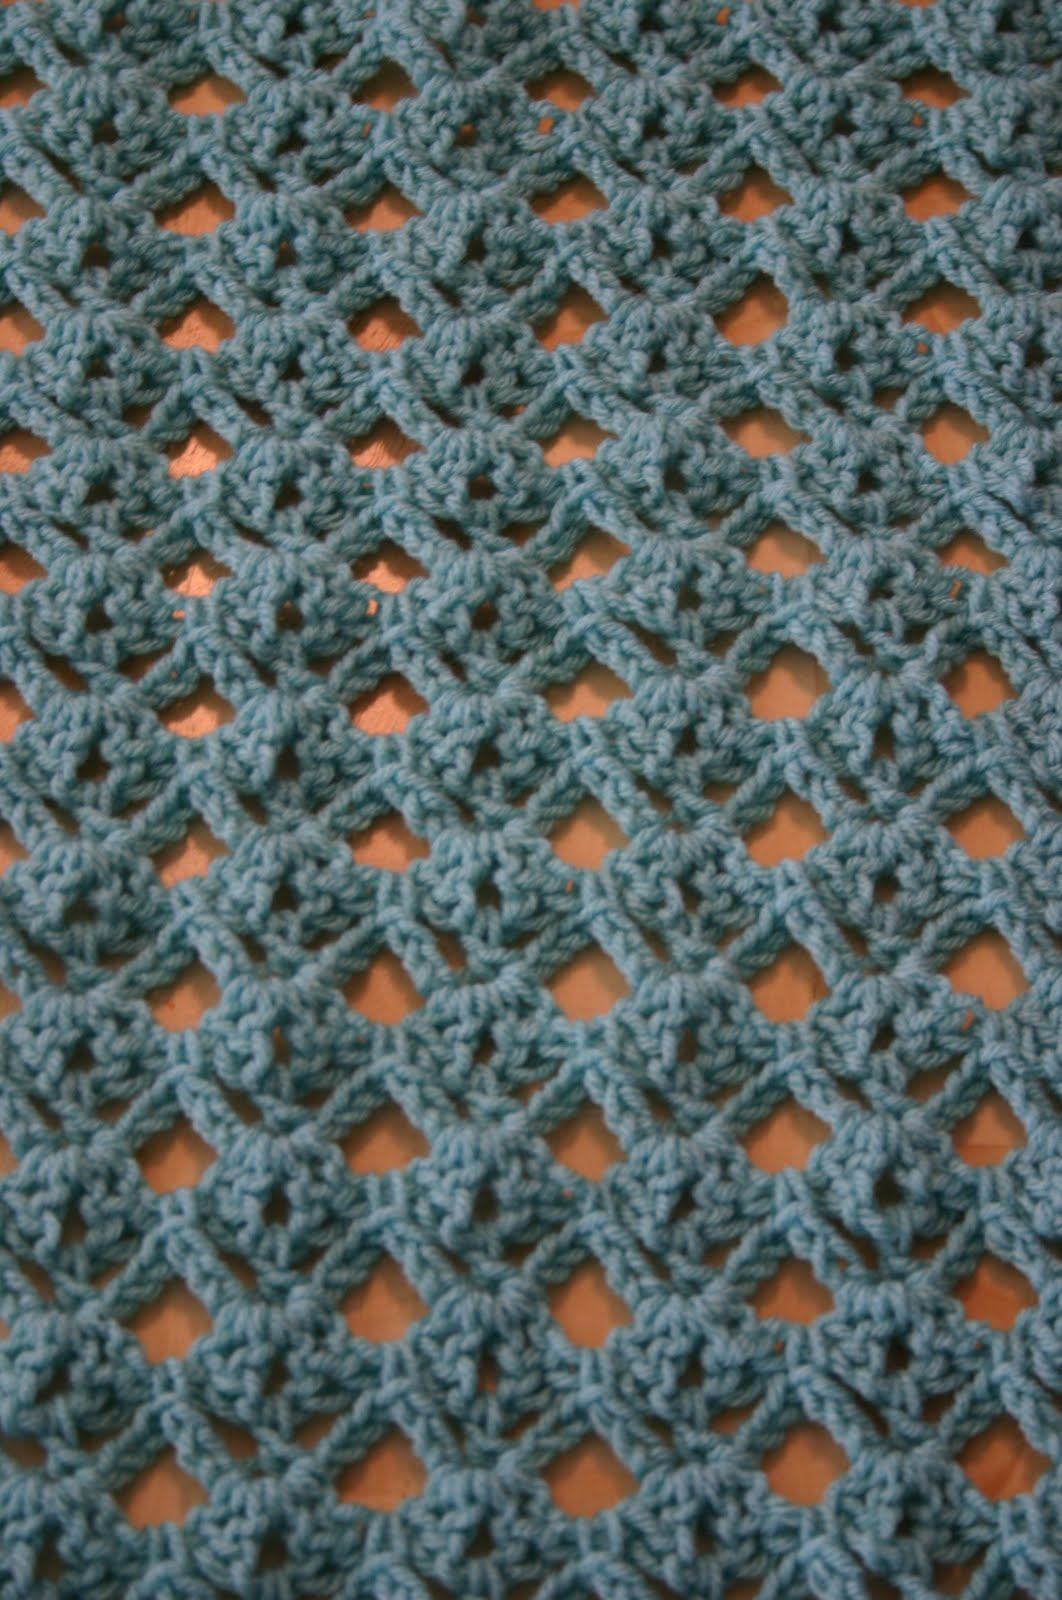 Suziqcreations diamond lace stitch tutorial thanks to pinterest my diamond lace baby afghan is the most viewed post on my blog ive had requests for the stitch pattern and have been meaning to post dt1010fo